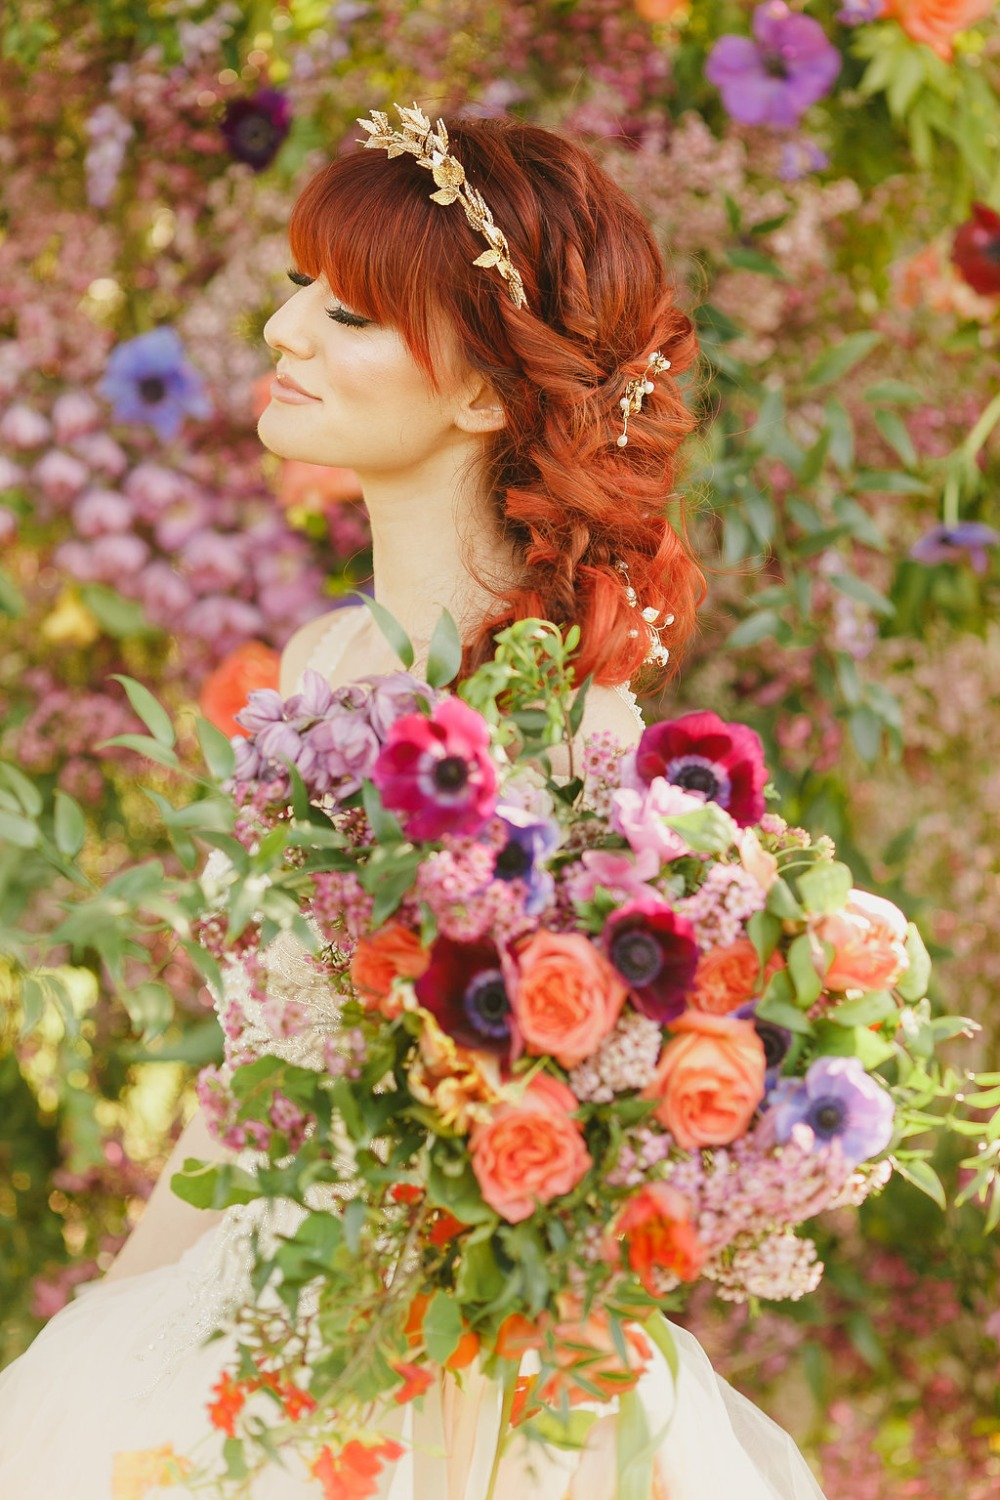 Floral Fairytale Shoot at Heavenly Oaks Flower Farm Bride and Bouquet